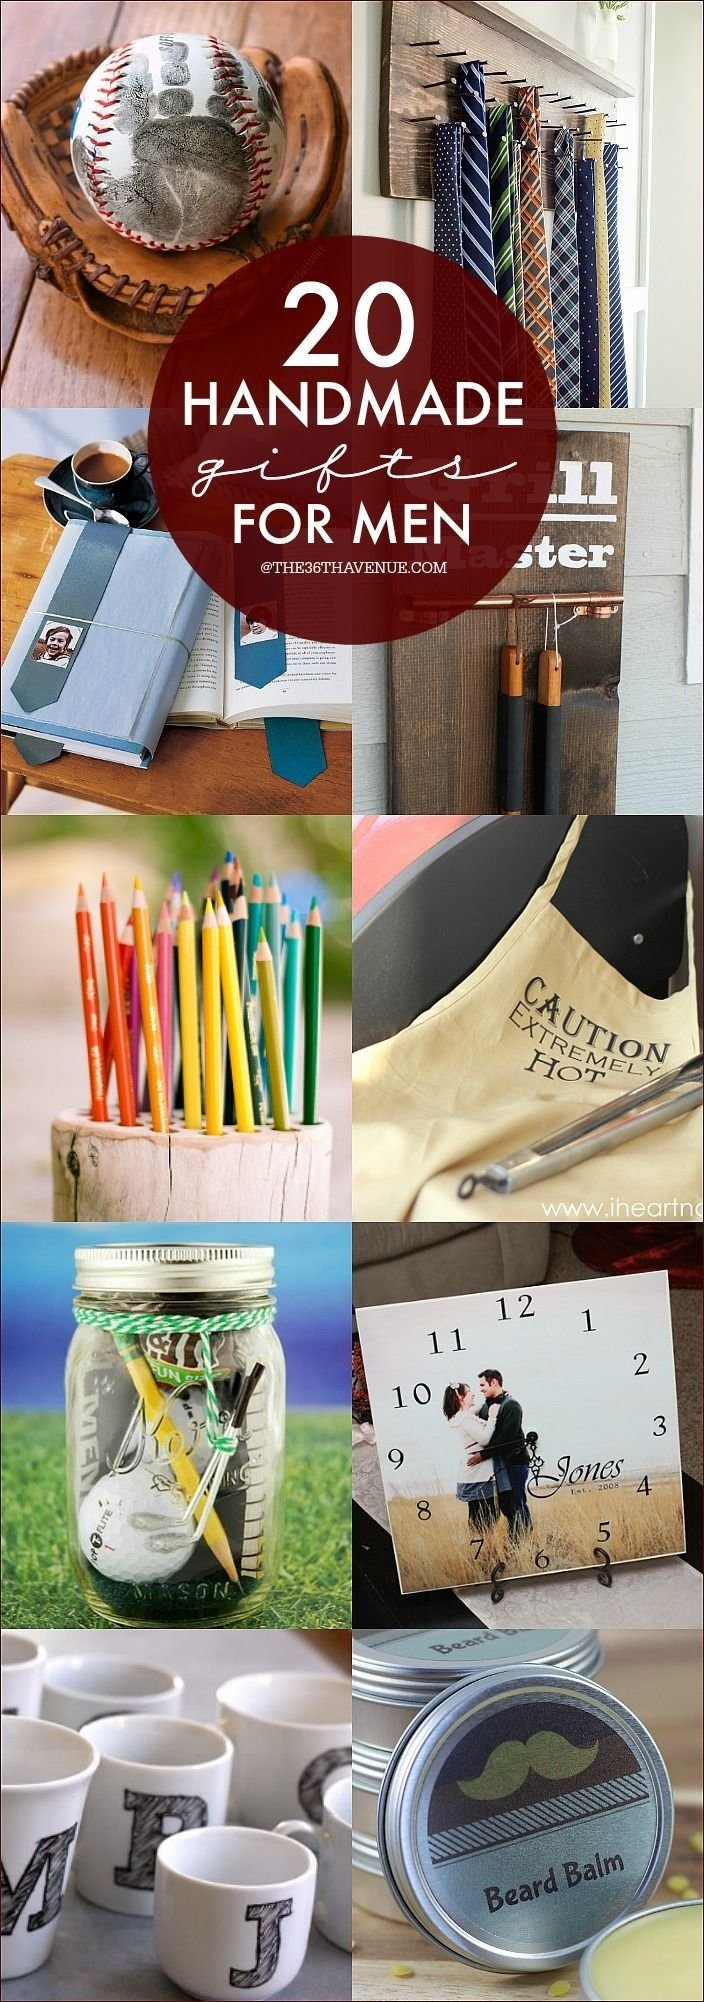 10 Perfect Homemade Christmas Gift Ideas For Men handmade gift tutorials for men tutorials gift and craft 2021